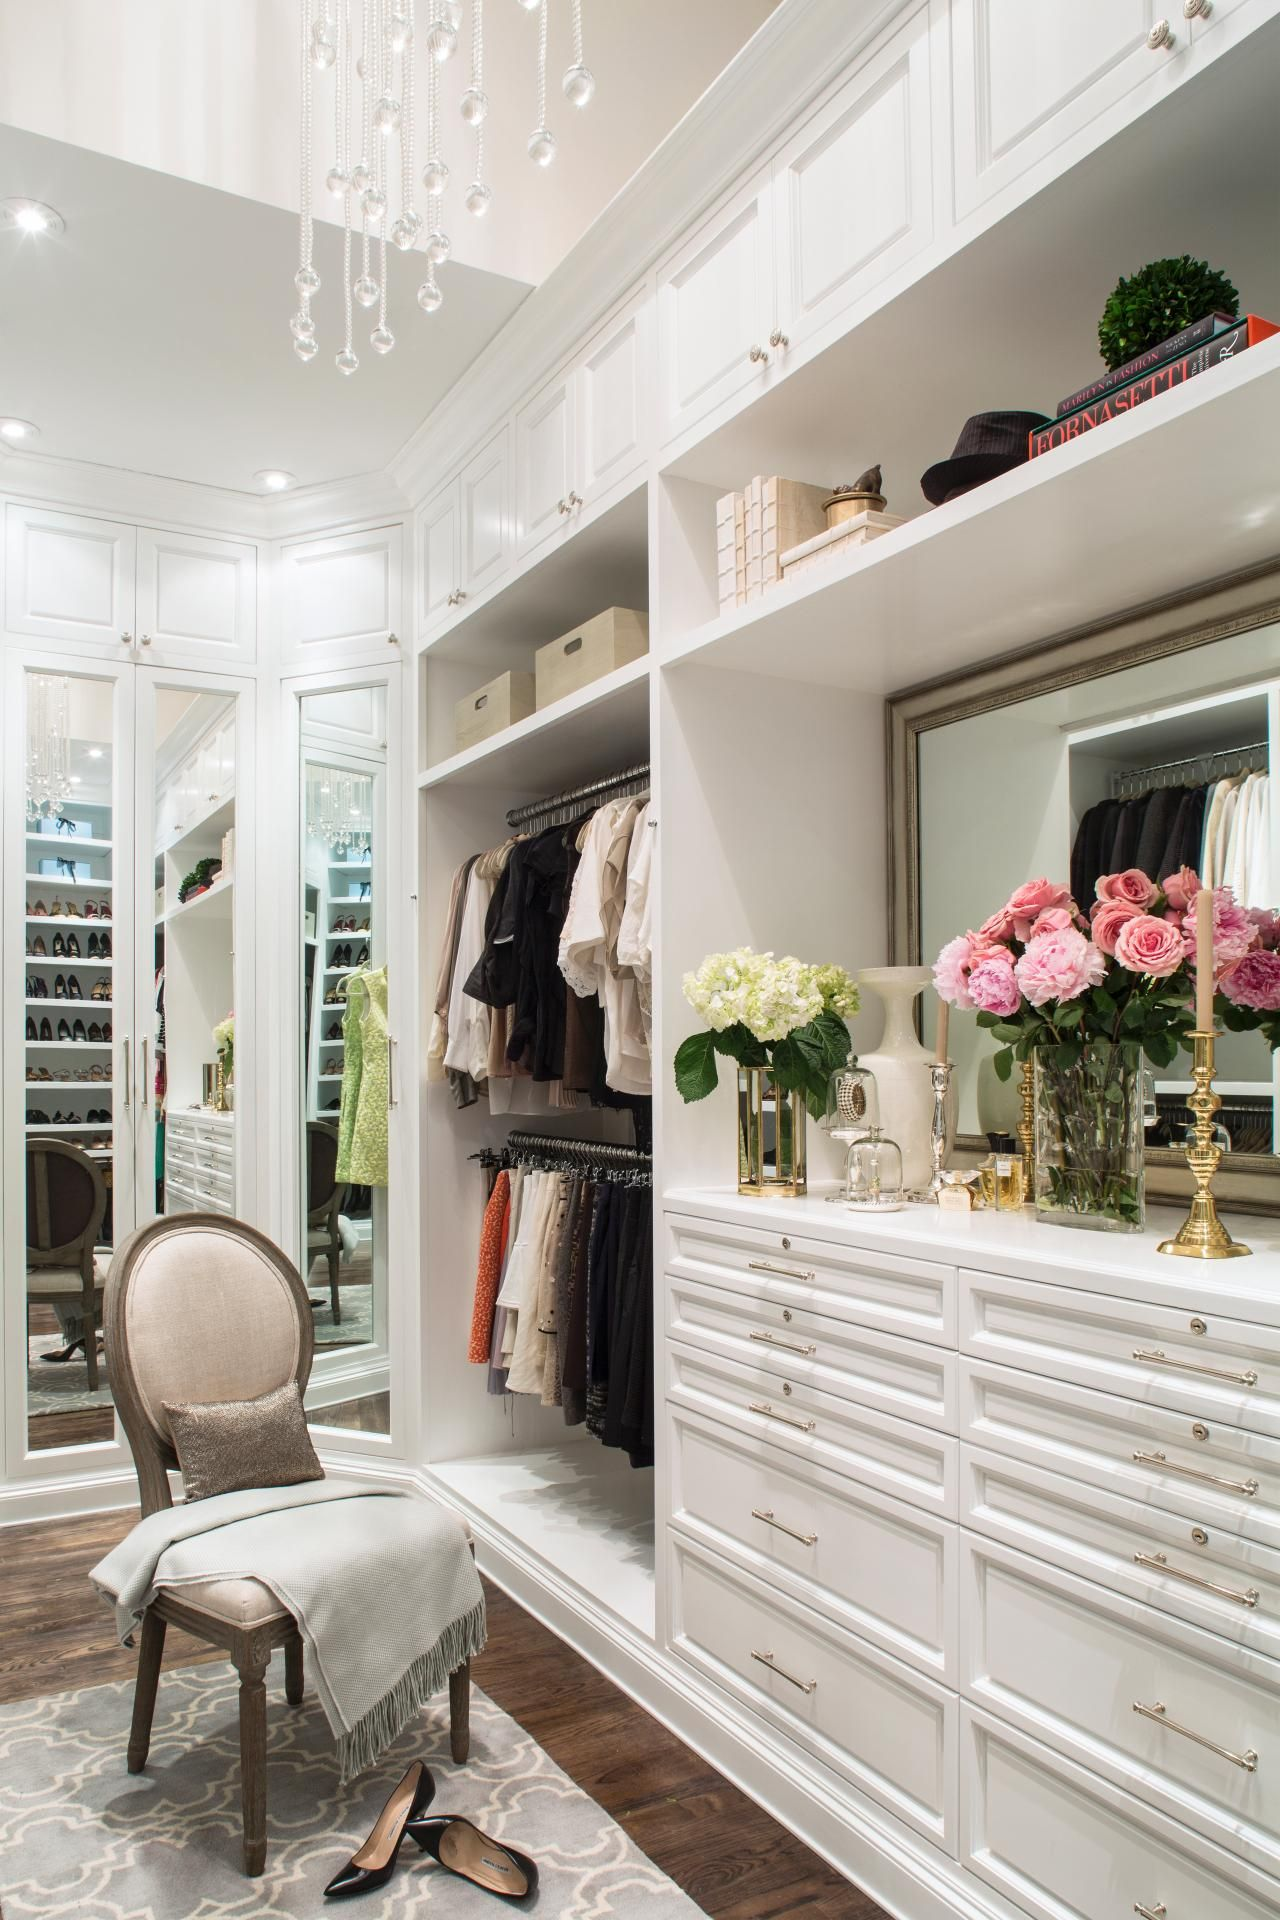 Living Room Closet Design Fascinating A Demure Louis Xivstyle Chair Provides A Perfect Perch For Review